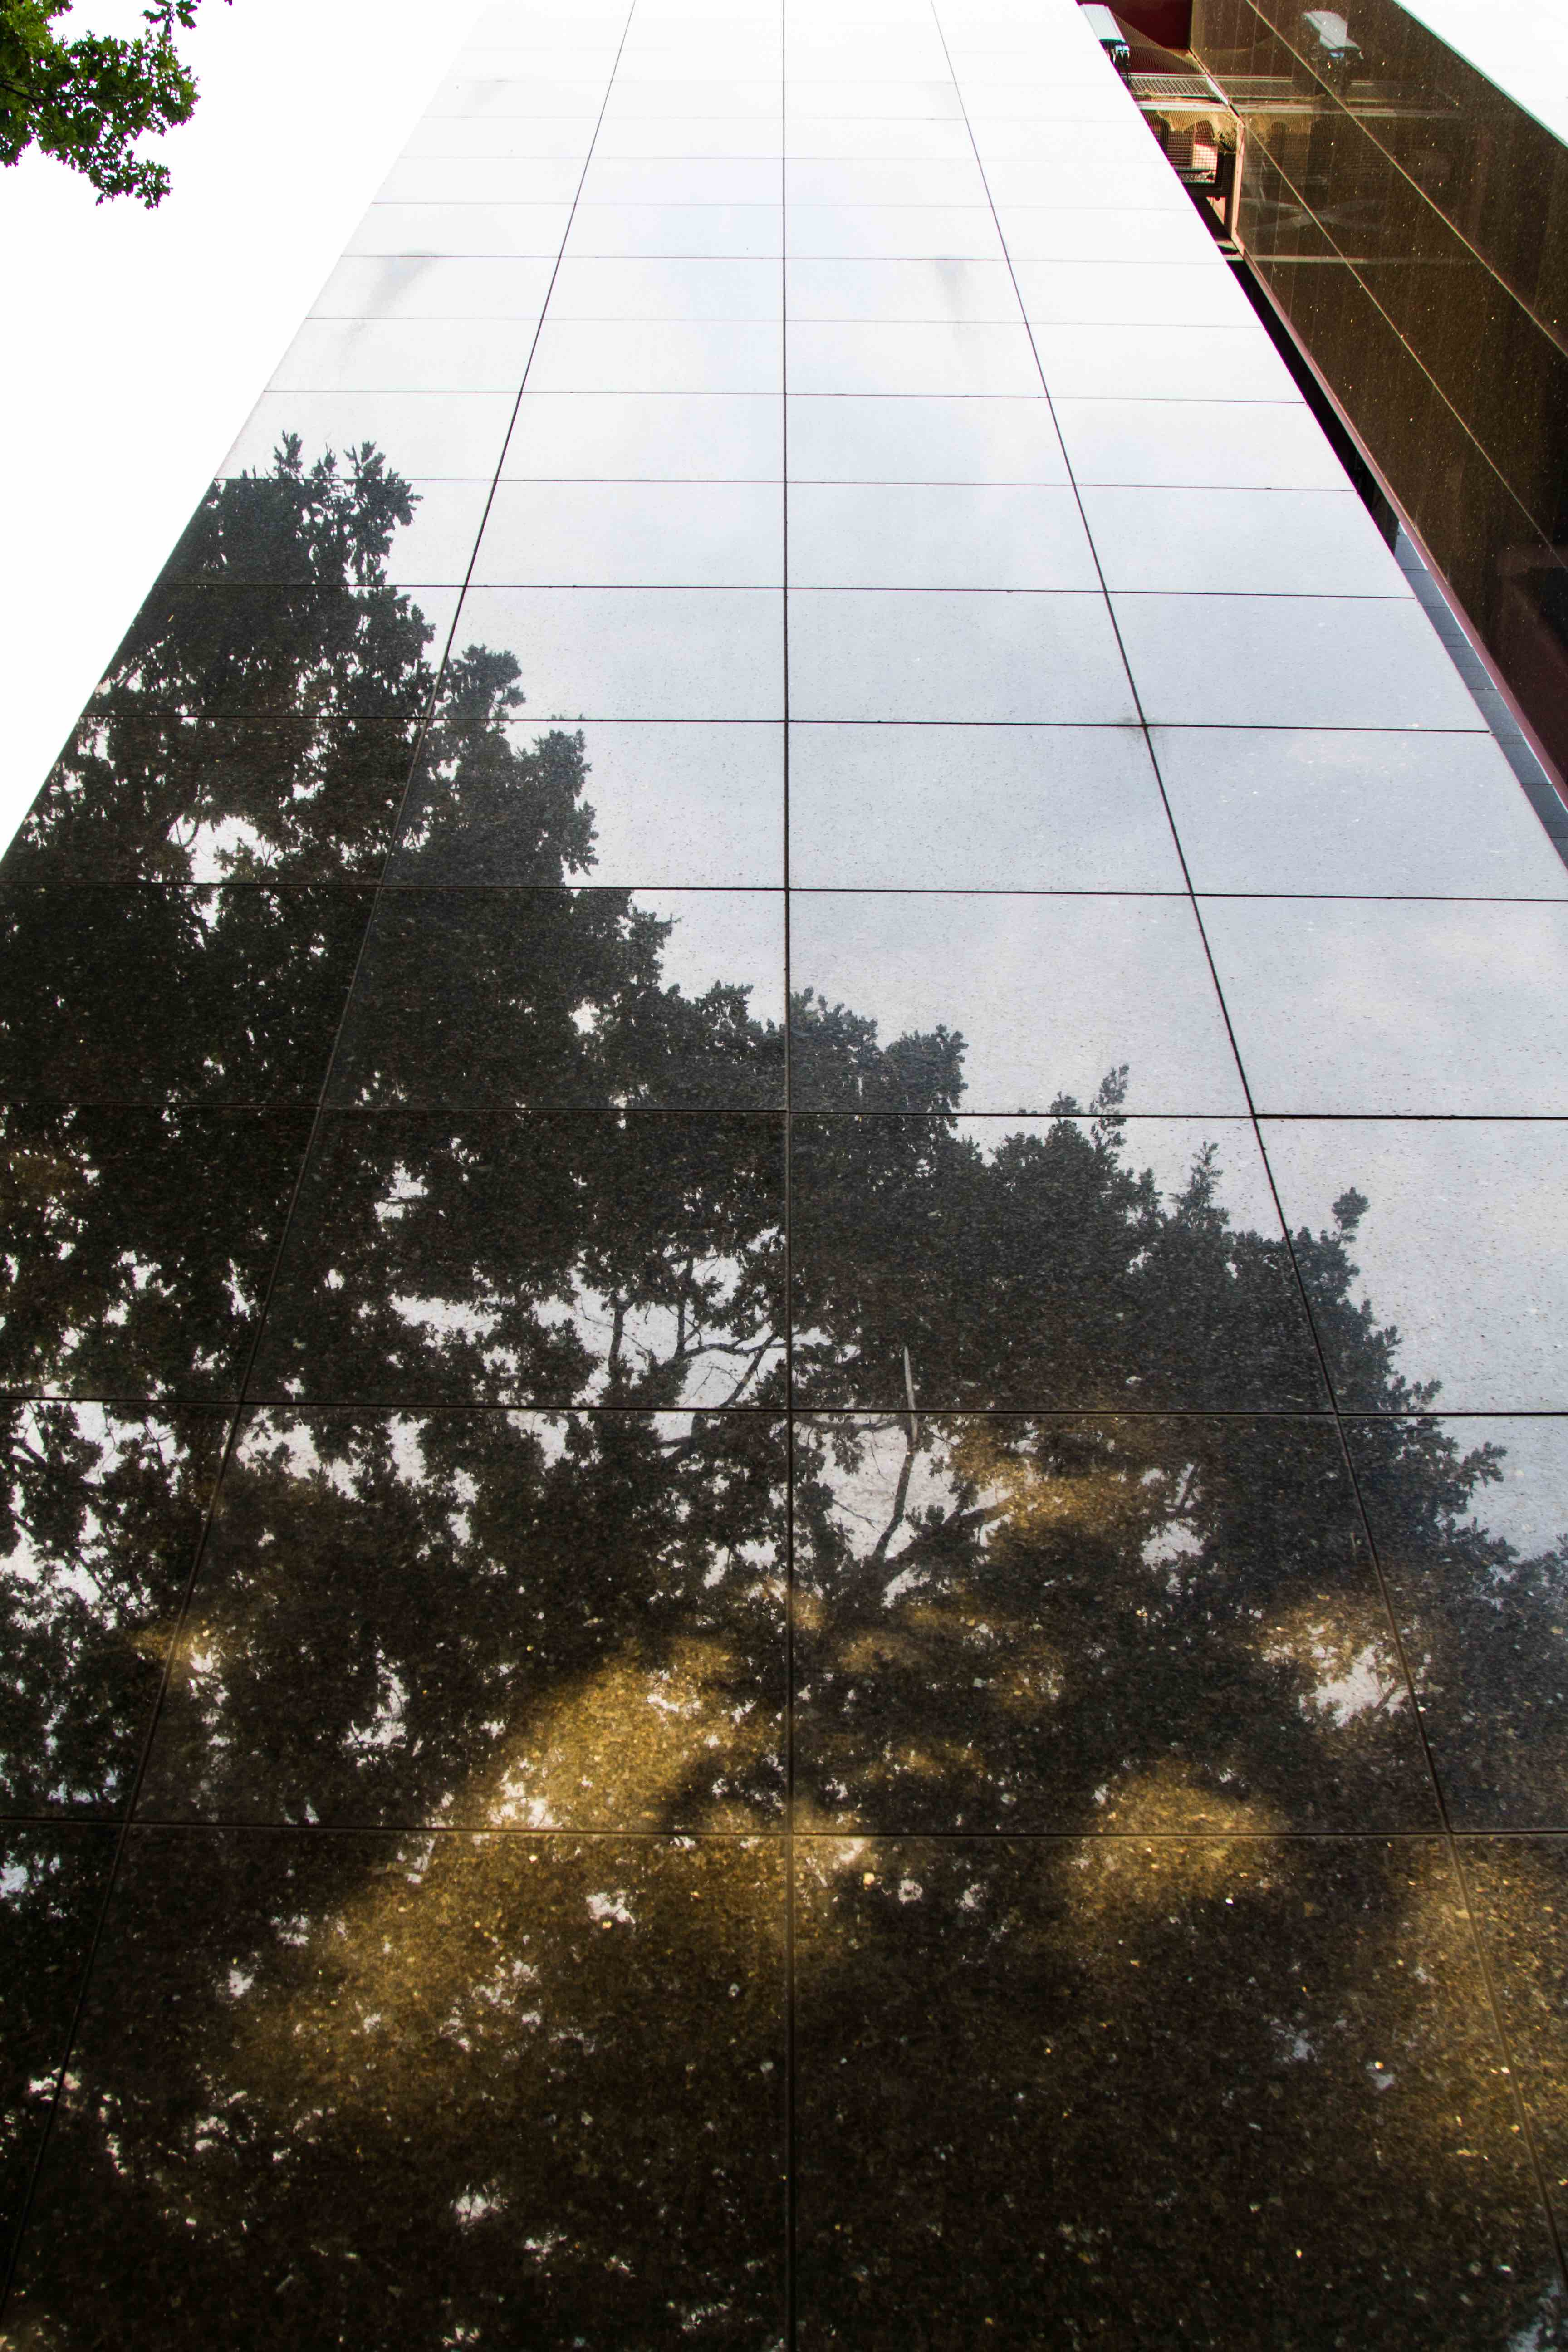 High wall with reflections of trees.